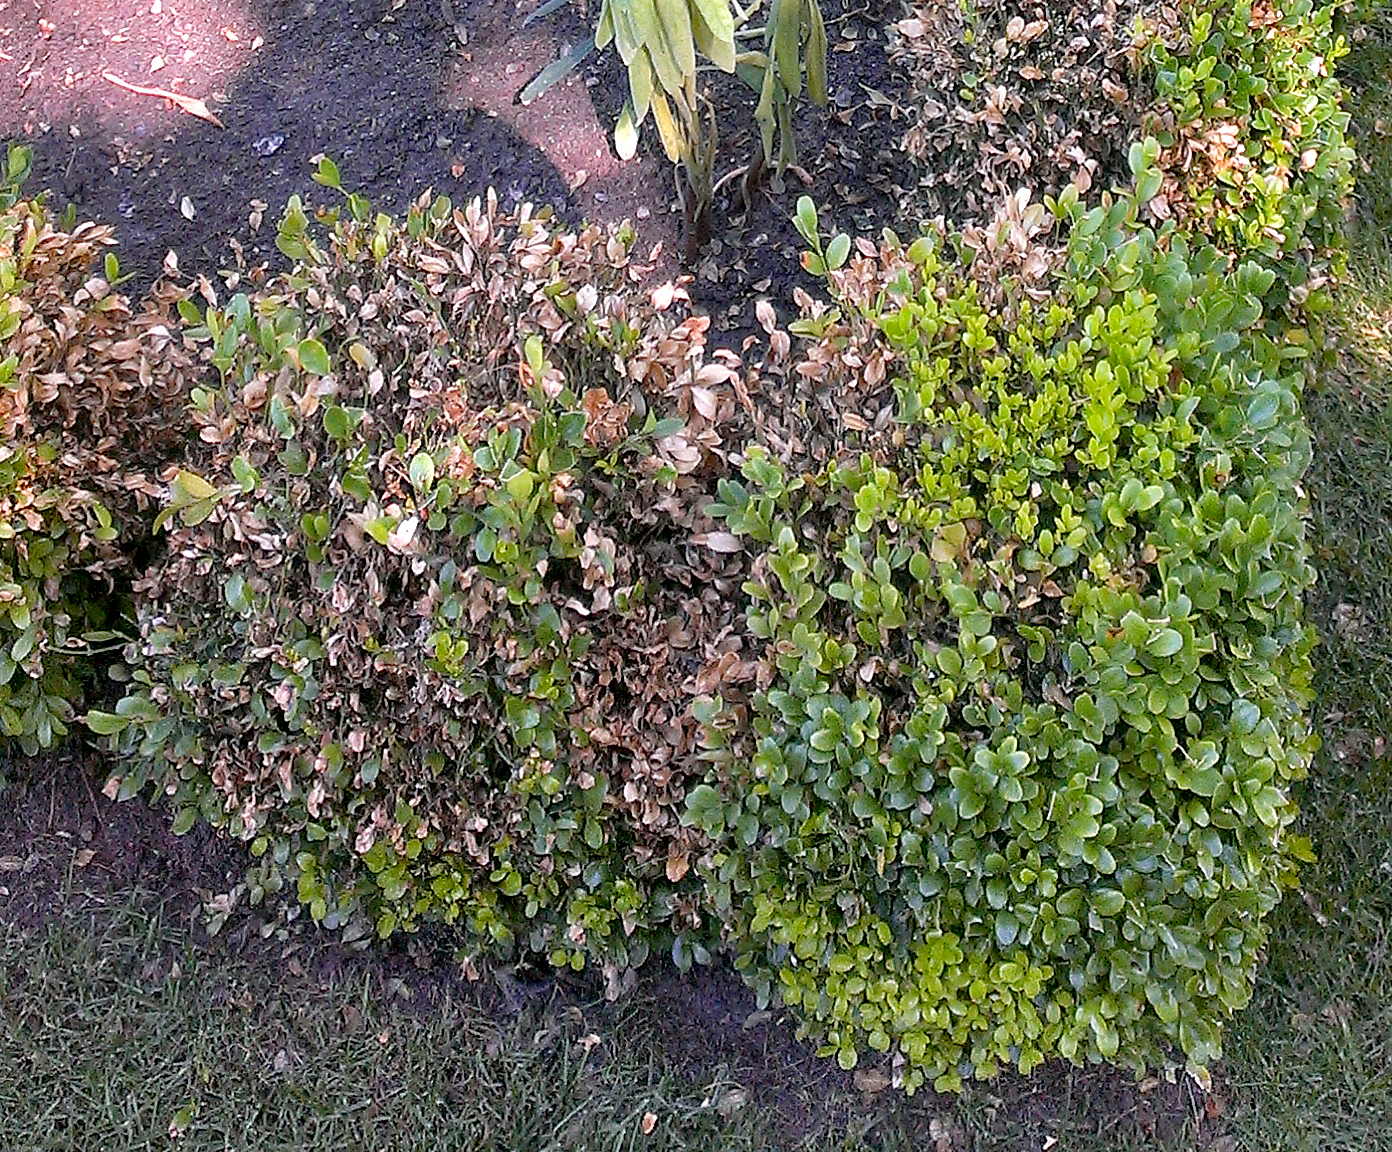 Boxwood blight spread